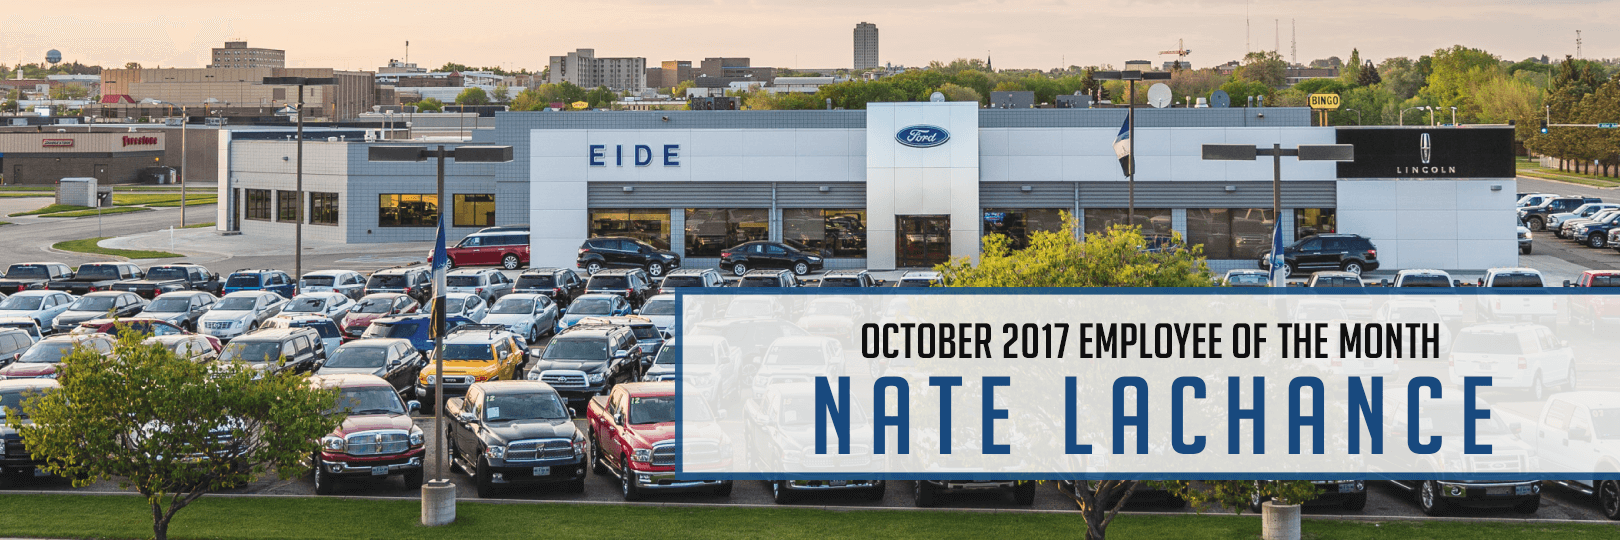 Employee of the Month Nate LaChance Eide Ford